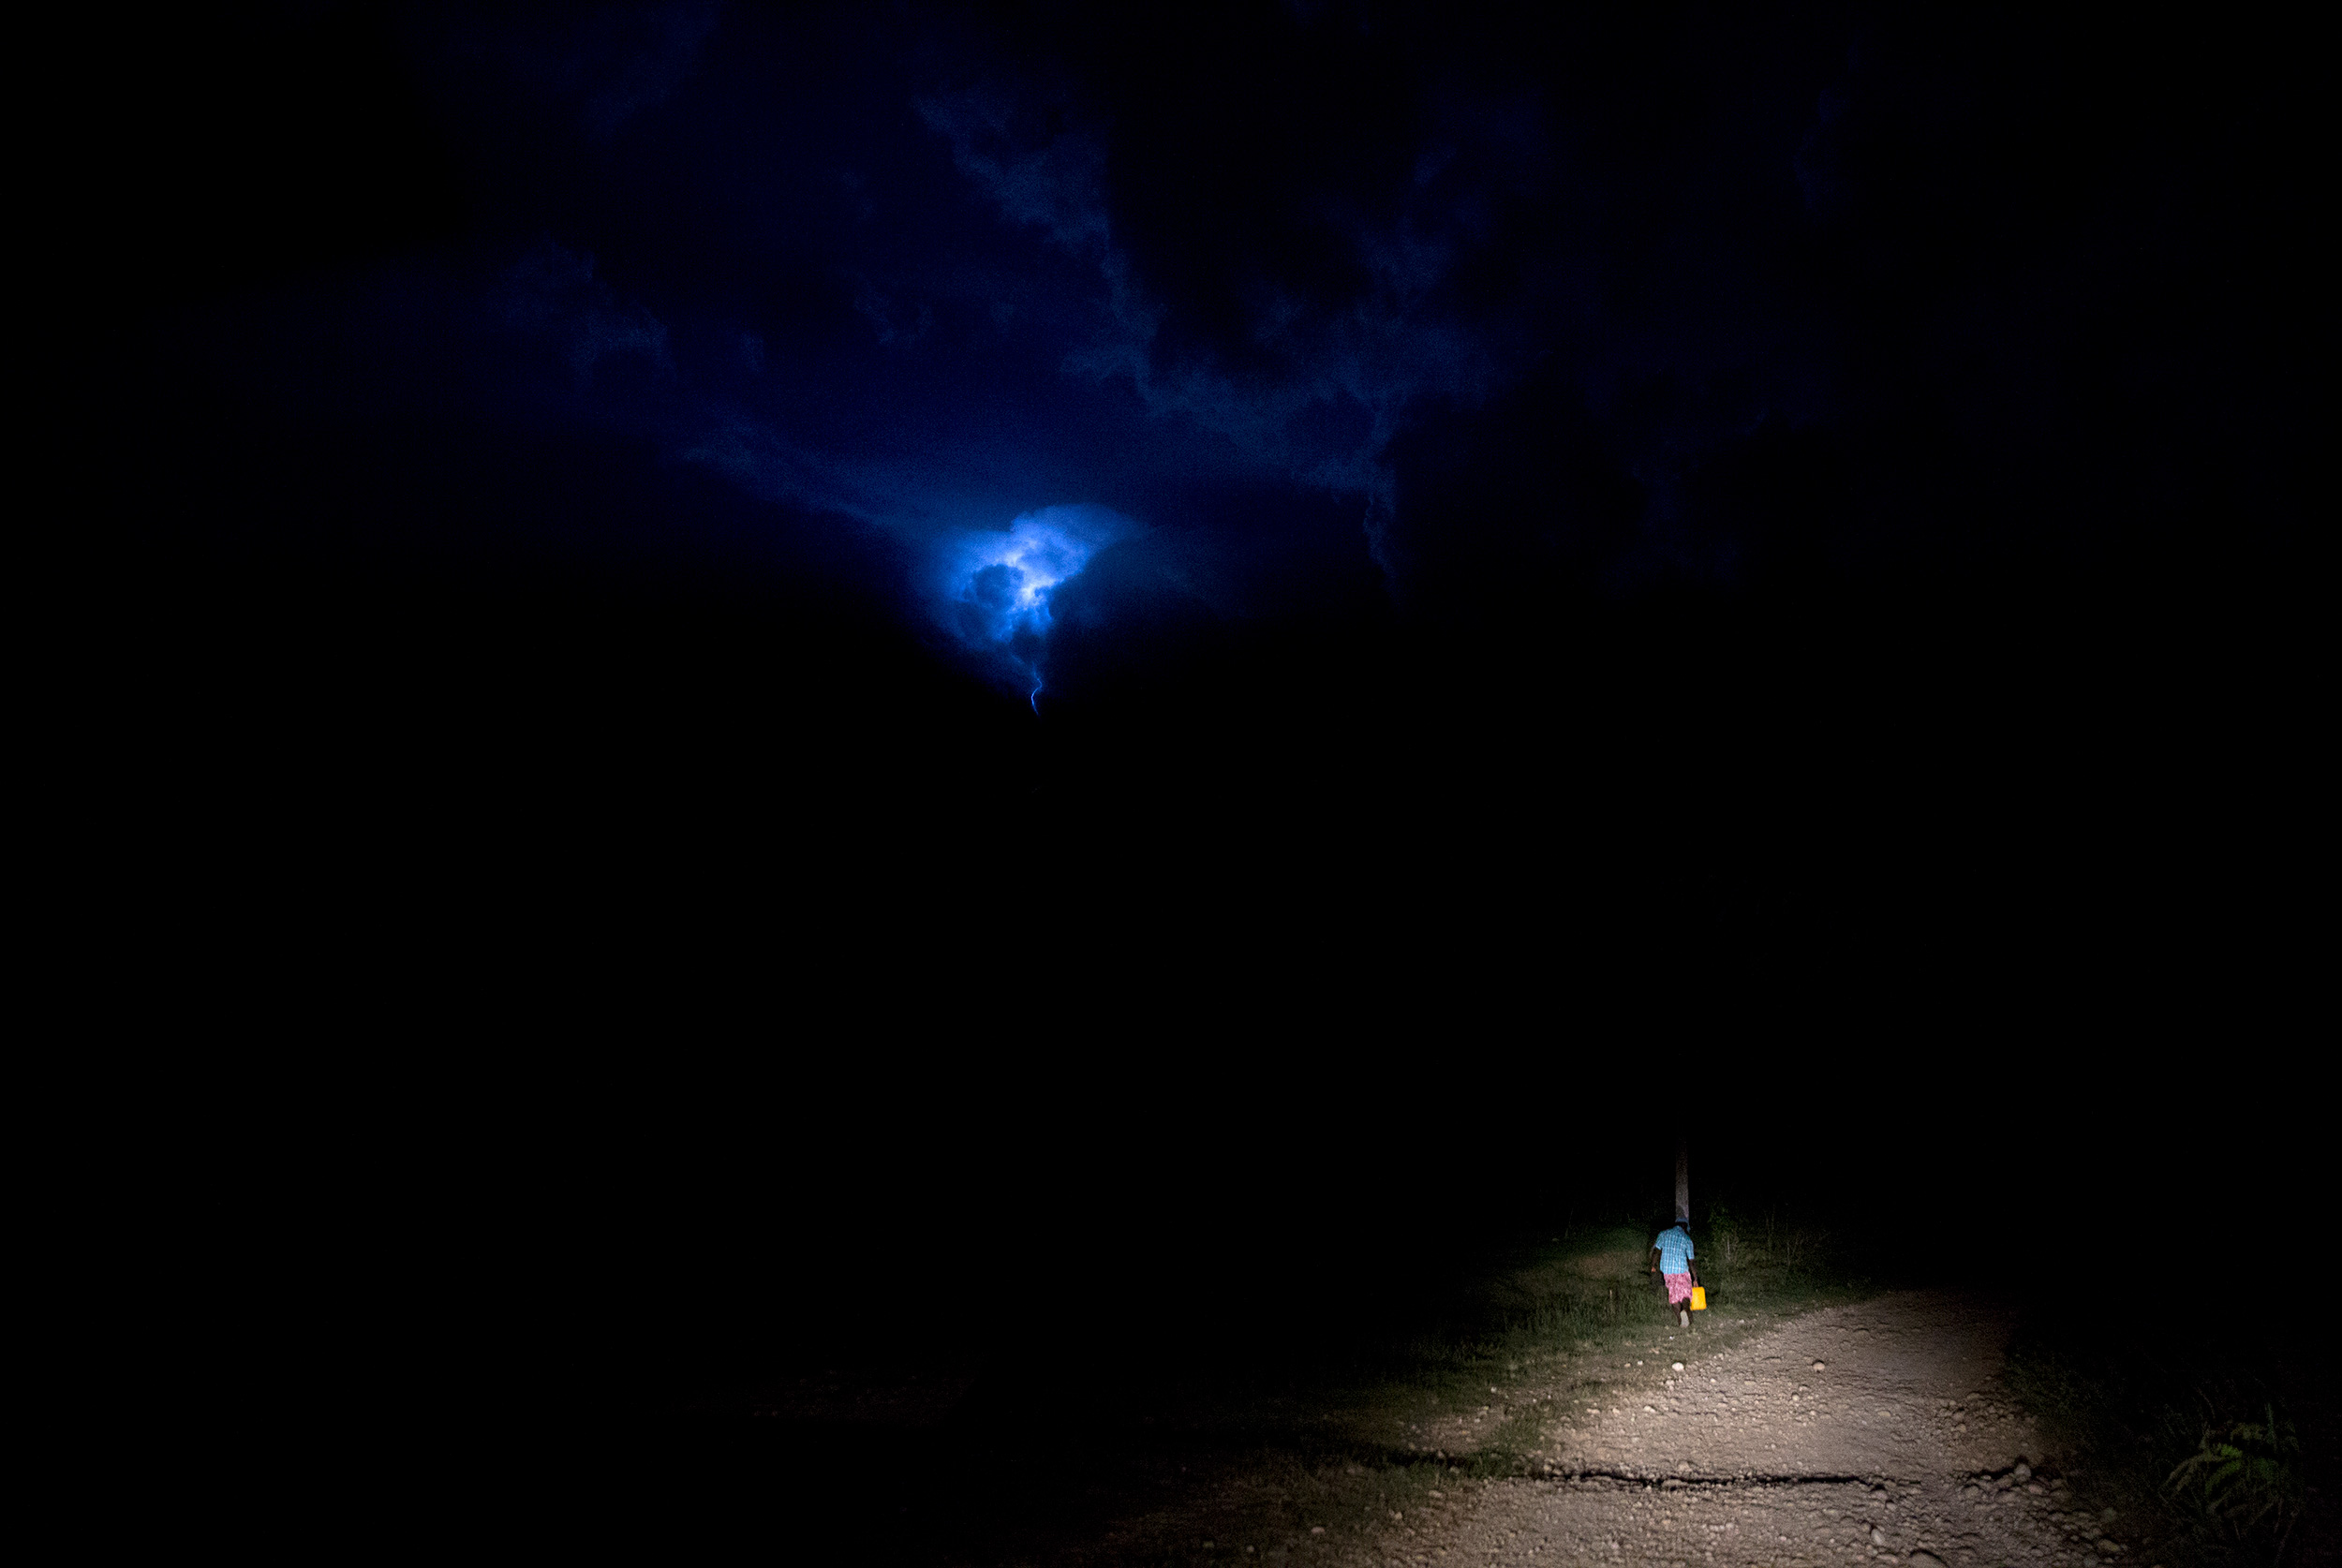 TRAVEL_HAIT_LIGHTNING_STORM_rainstorm_night_headlight_0814_WB